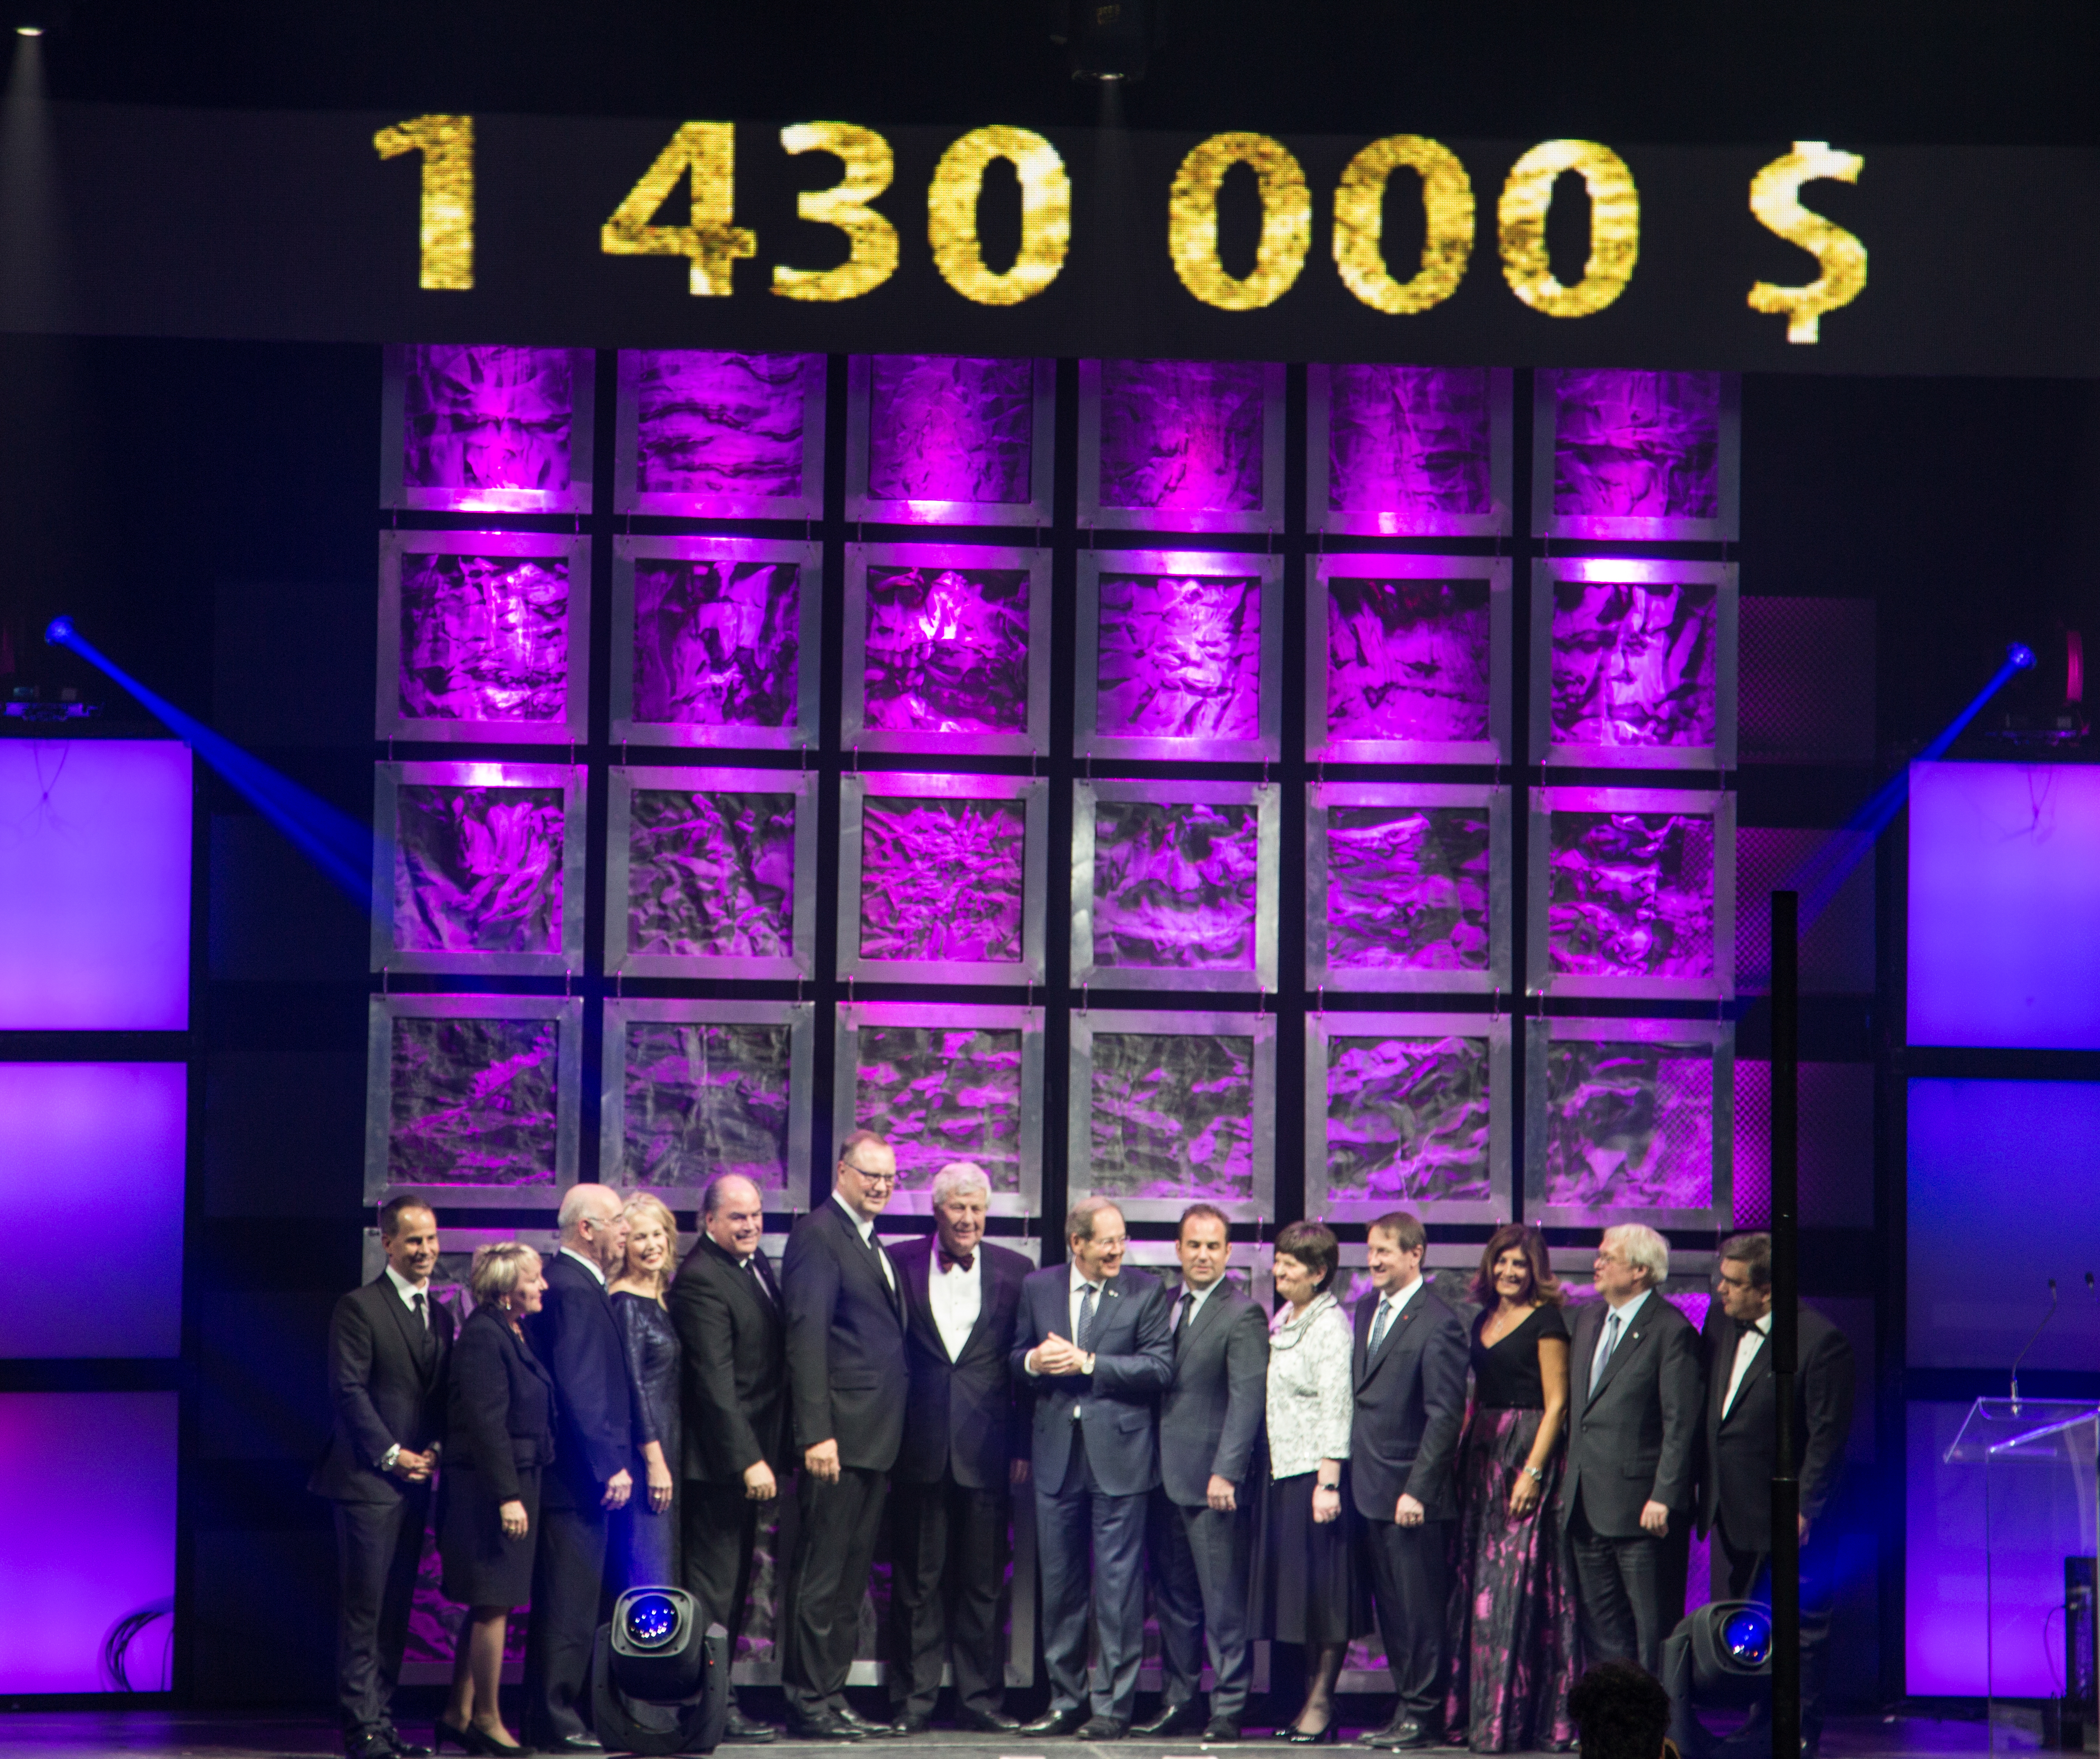 The evening grossed $1,430,000 through tickets sold, a raffle and an electronic auction. Photo by Jennifer Selinger.